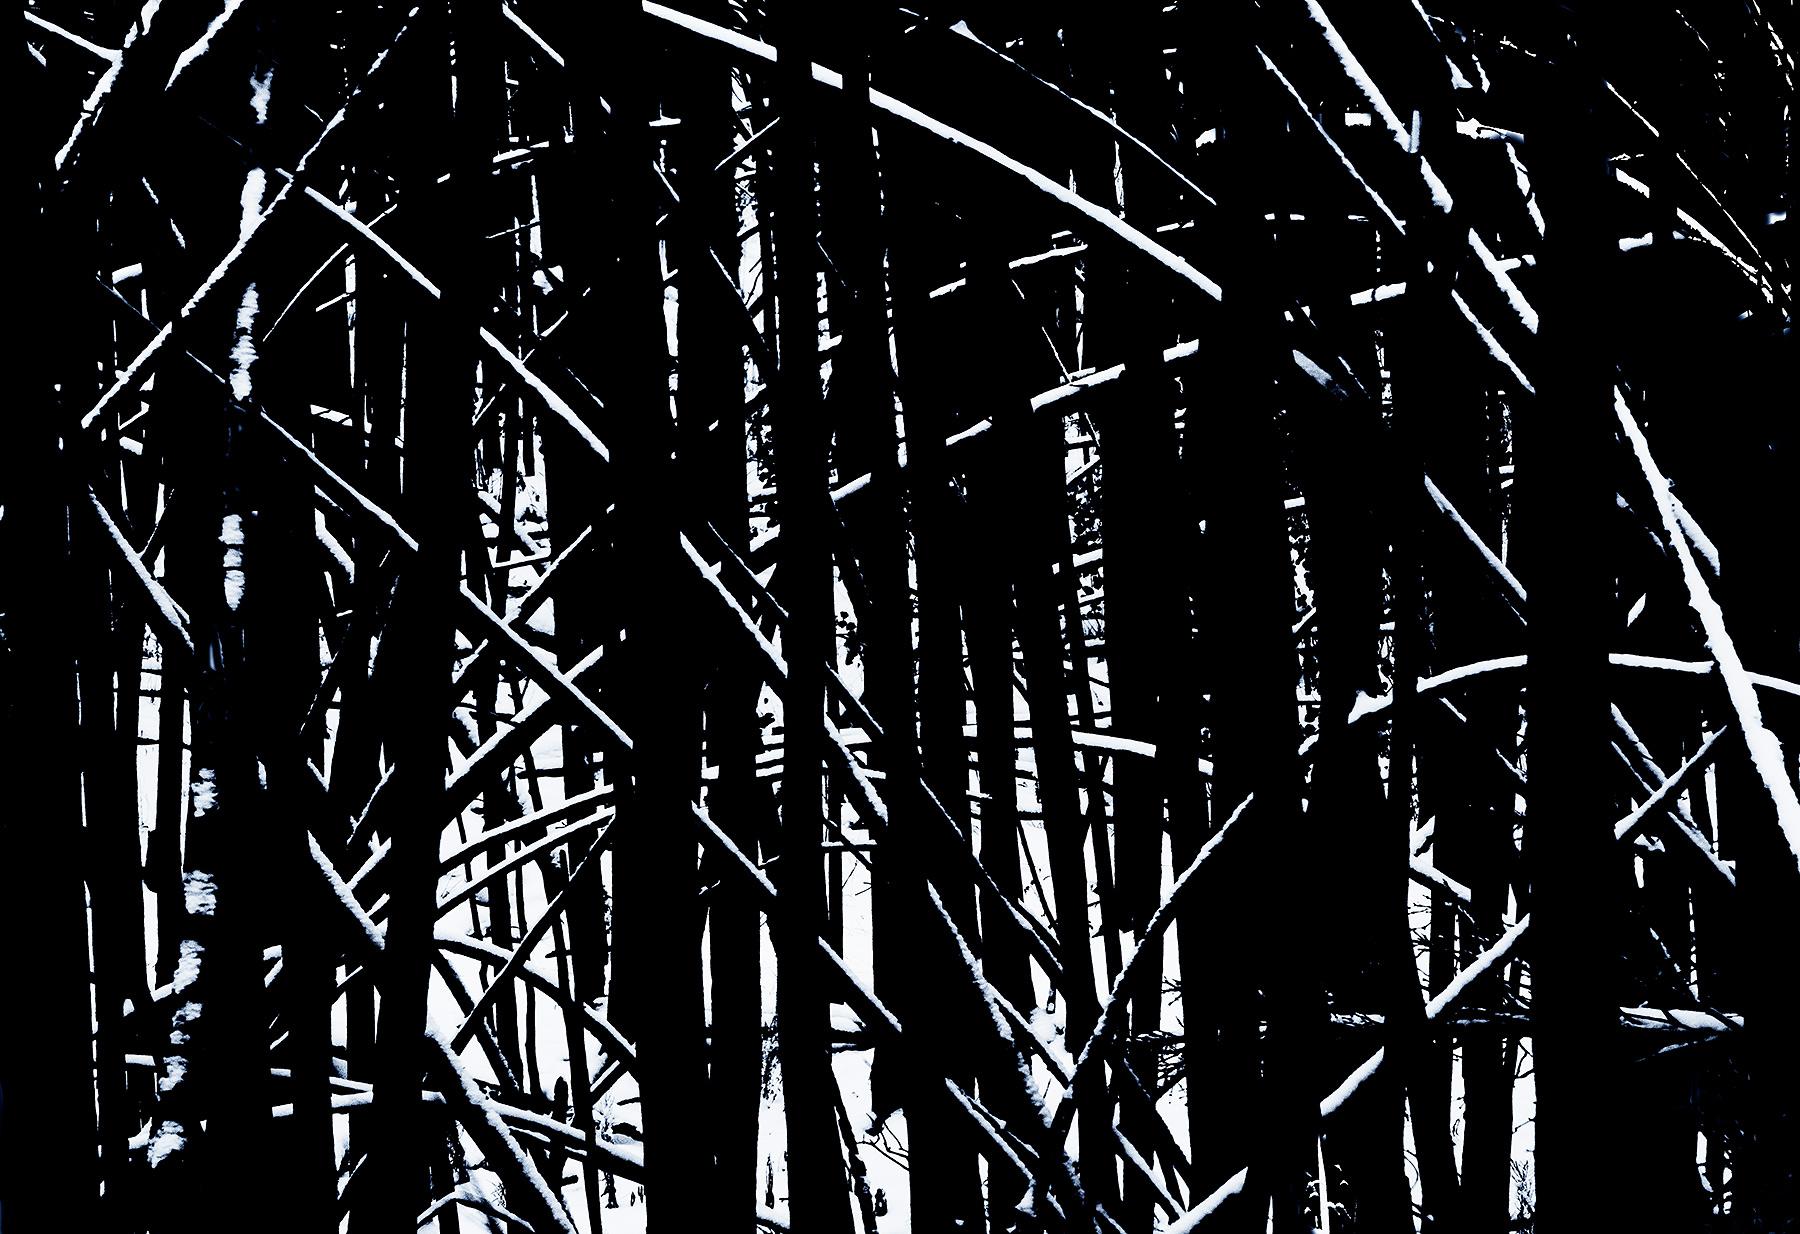 burned, snowy, British Columbia, Canada, forest, photo